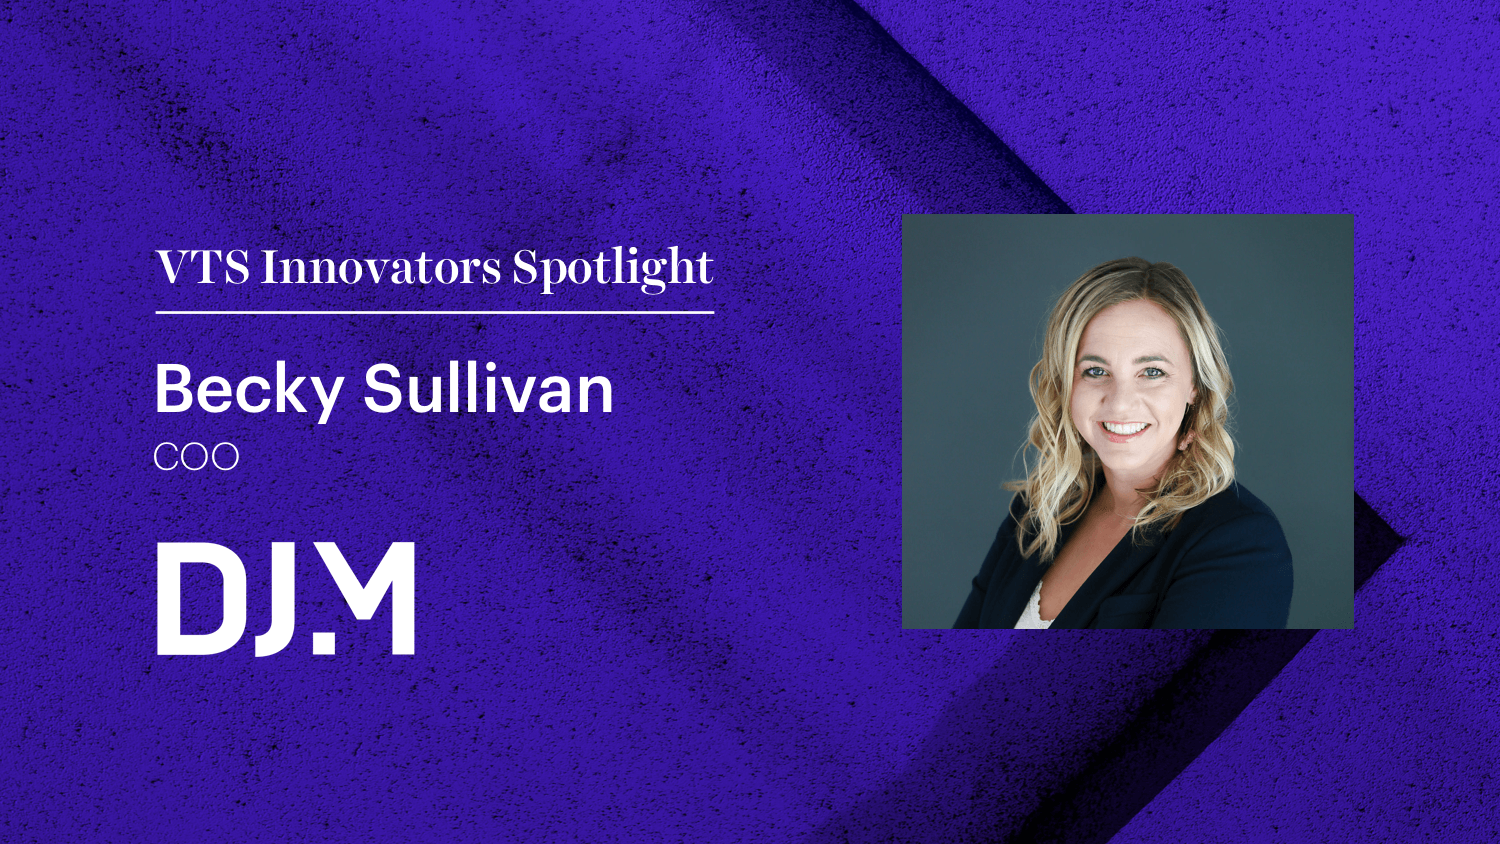 DJM COO Becky Sullivan on Embracing Retail's Evolution with Technology